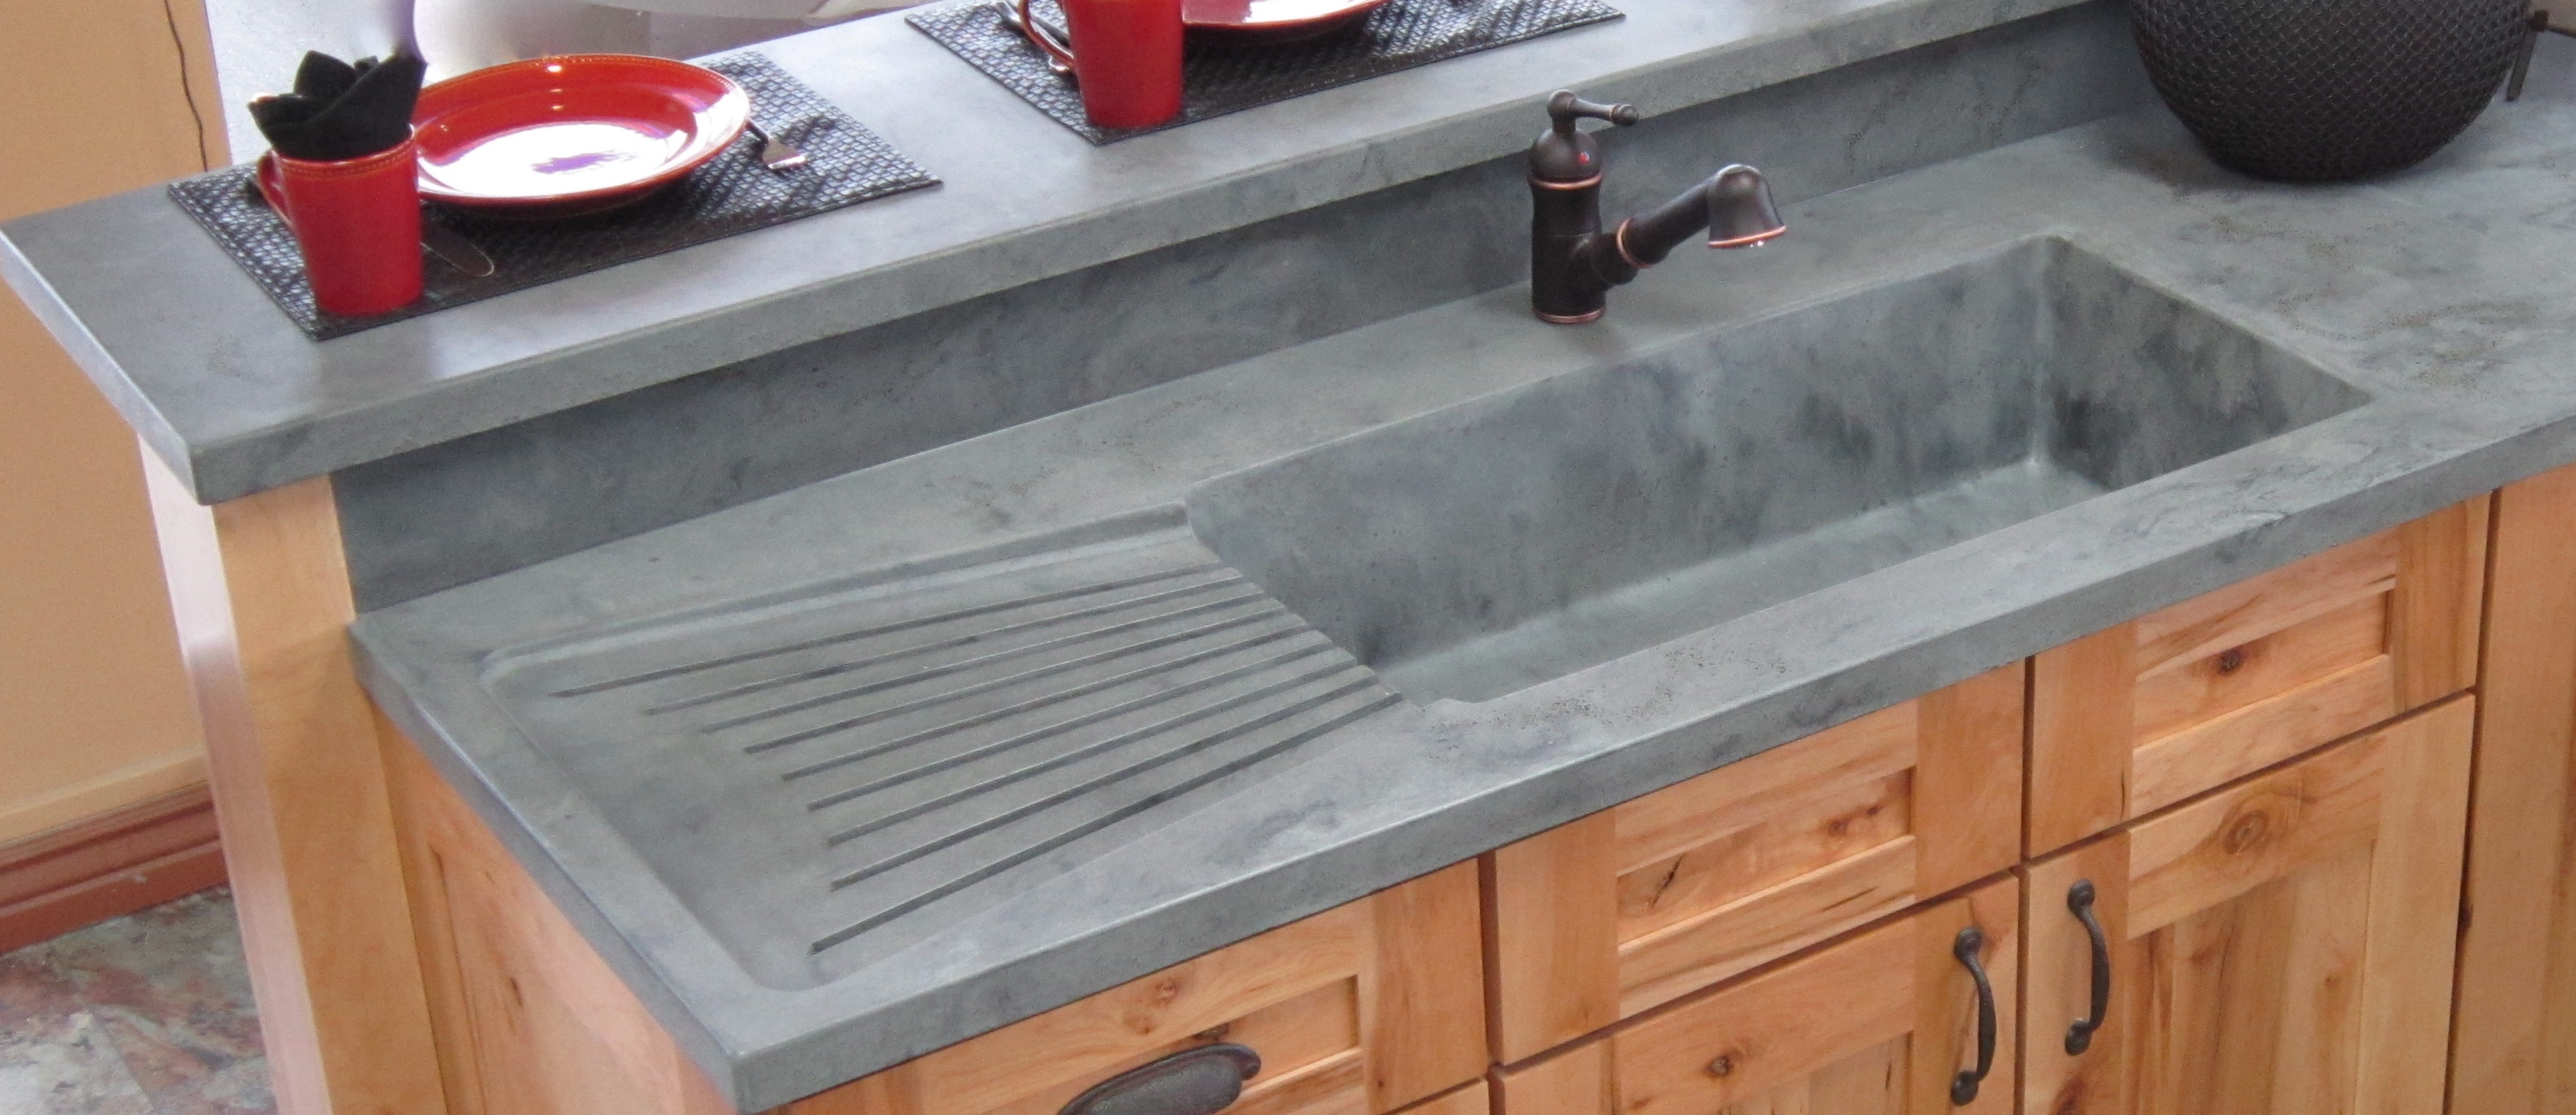 INTEGRATED KITCHENS SINKS U0026 DRAINBOARDS « McGregor Designs U2013 Decorative  High Performance Concrete